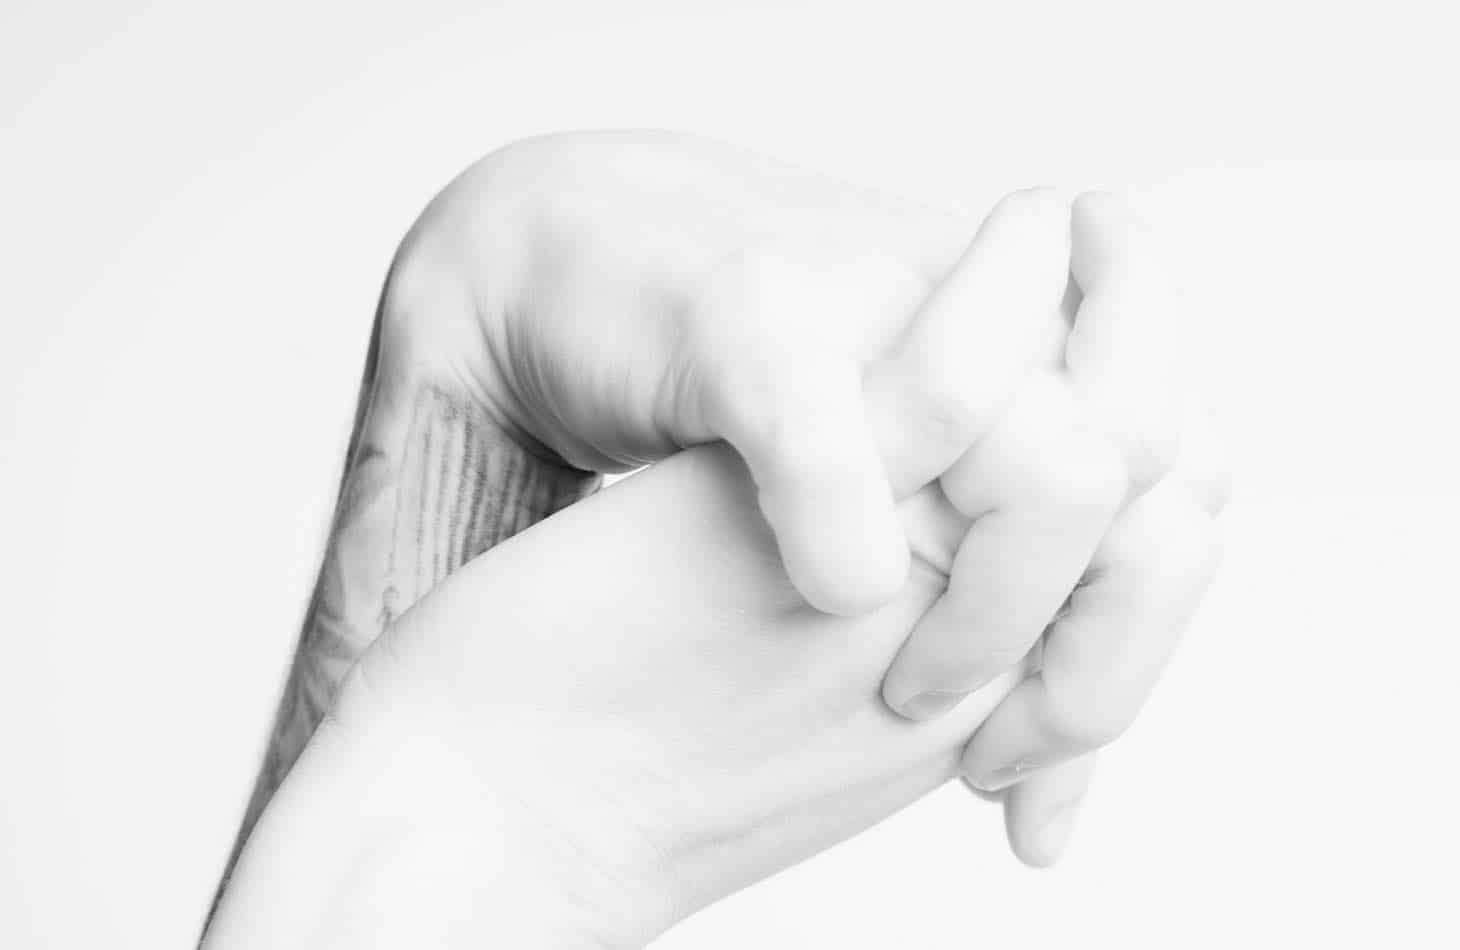 Hands Held Together As Client Withdrawals From Alcohol